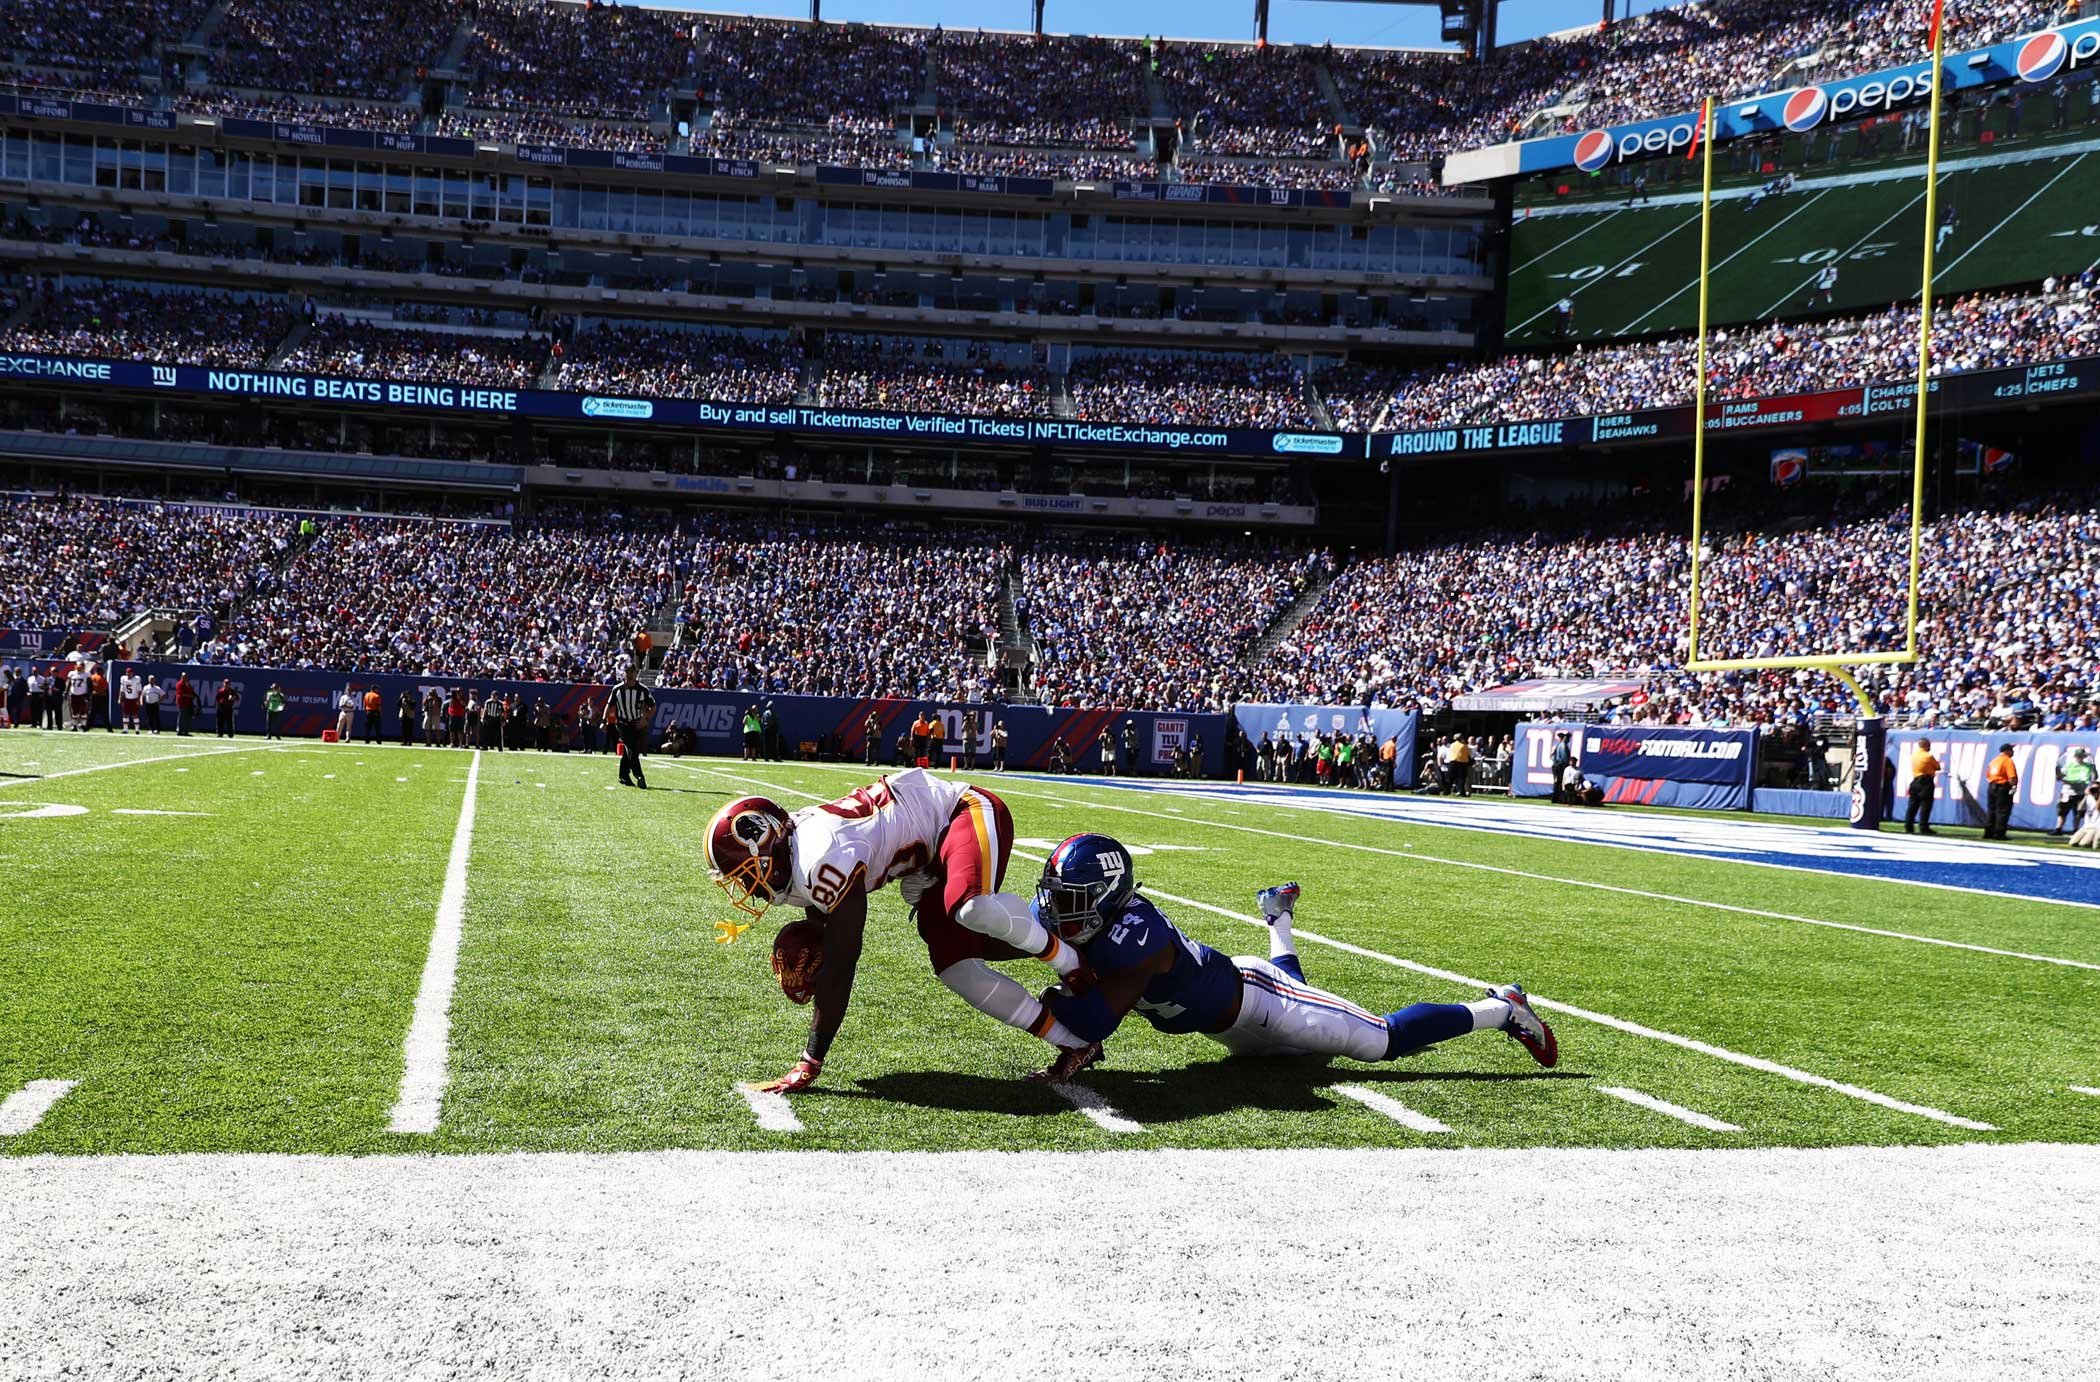 Jamison Crowder of the Washington Redskins escapes a tackle by  Eli Apple of the New York Giants on a punt return during their game at MetLife Stadium on Sept. 25.